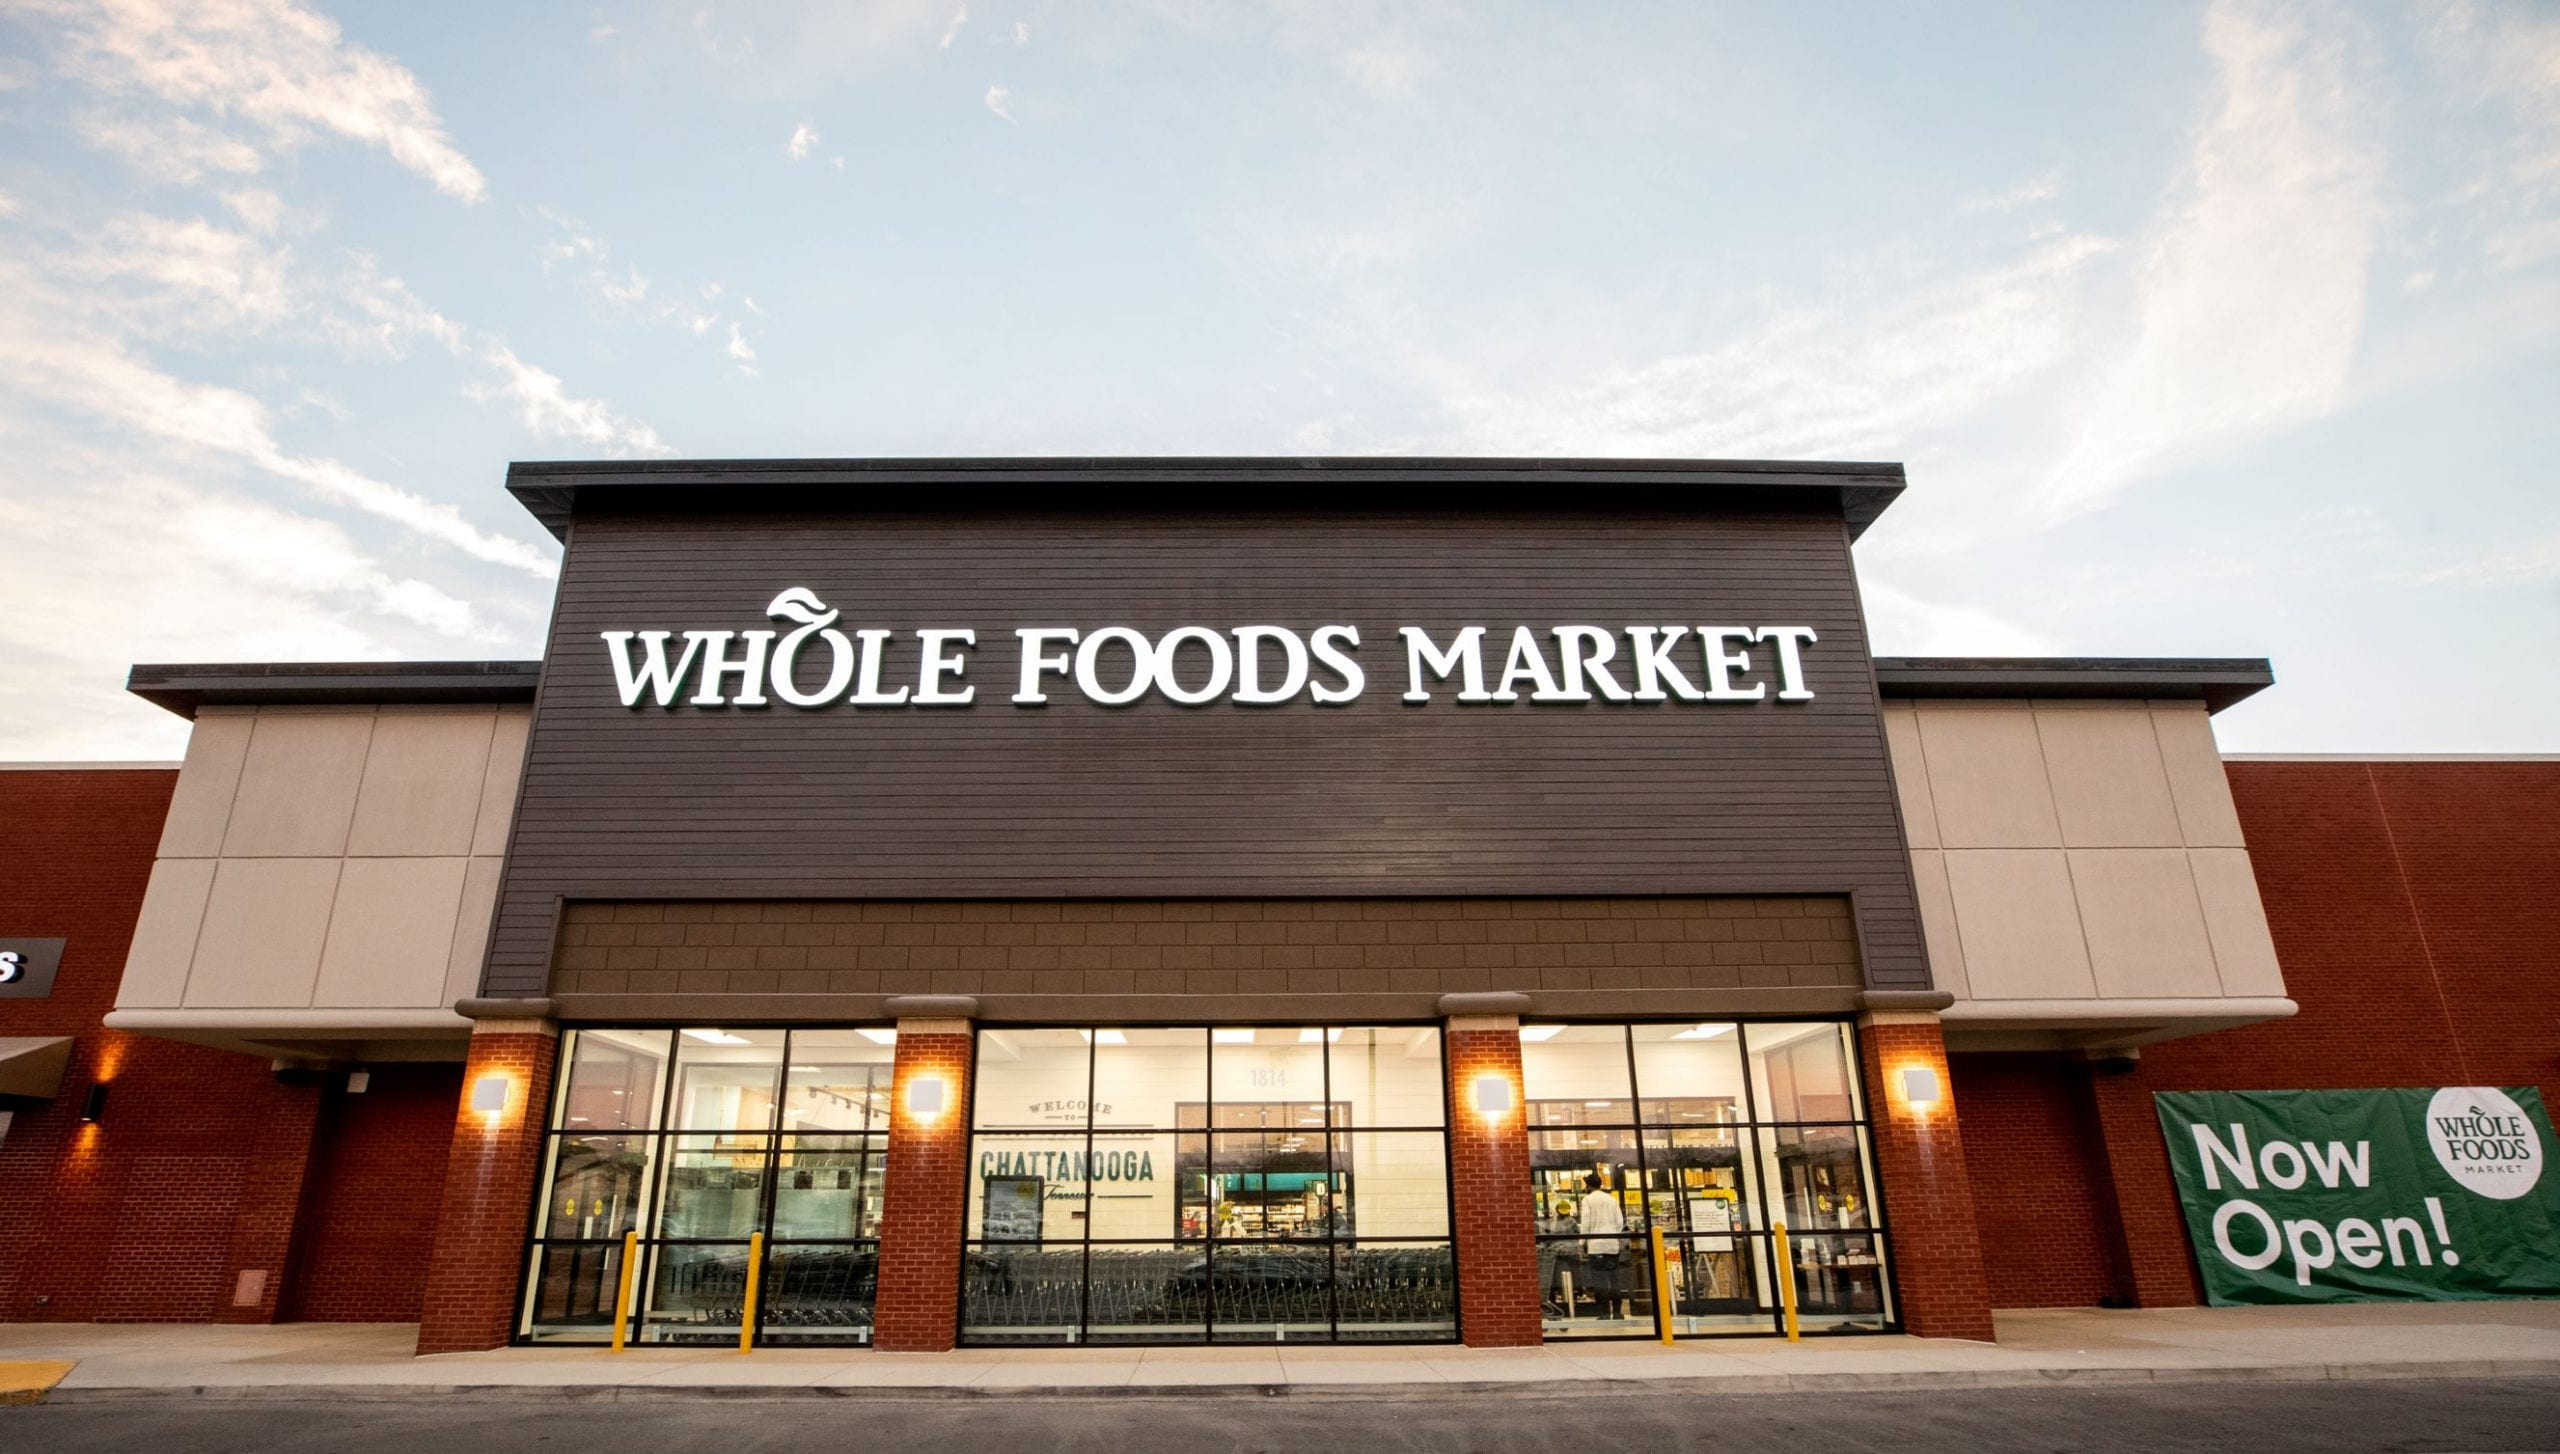 New Whole Foods Market in Chattanooga East to open Dec. 19